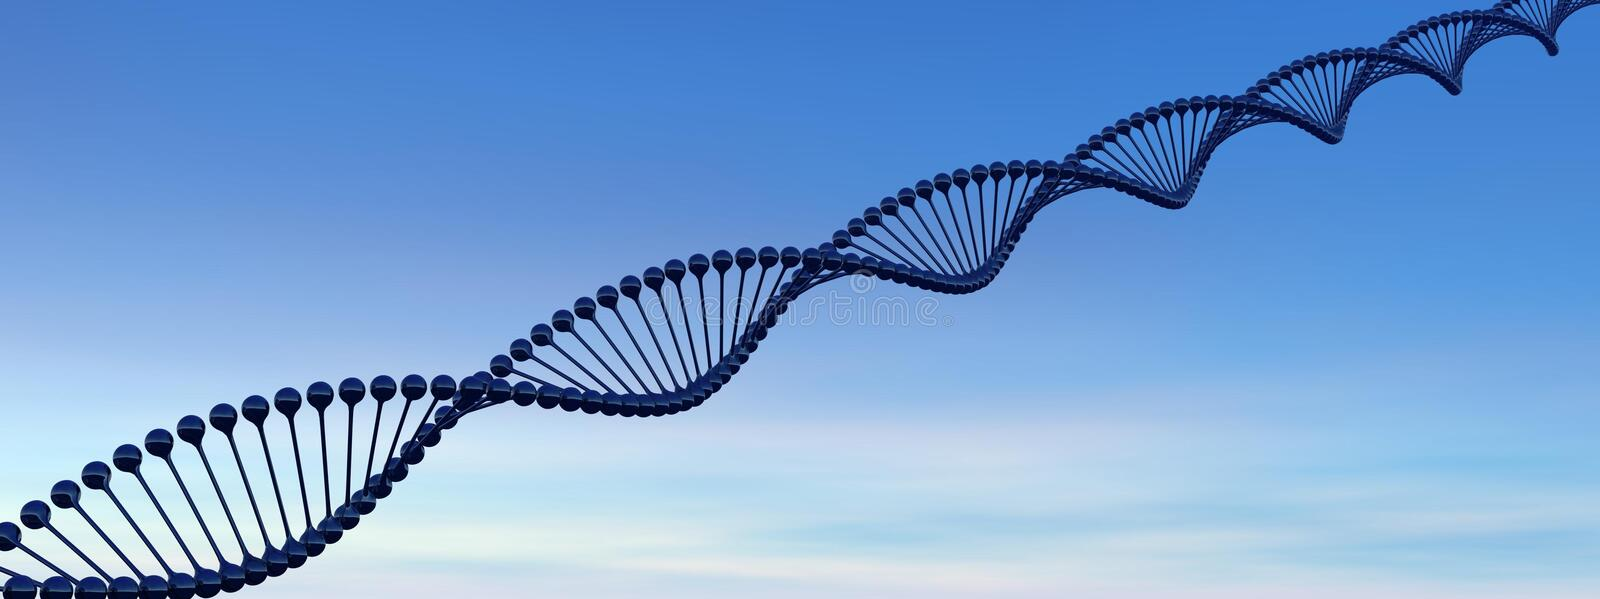 Download DNA chain stock illustration. Image of biochemistry, genetically - 23985805